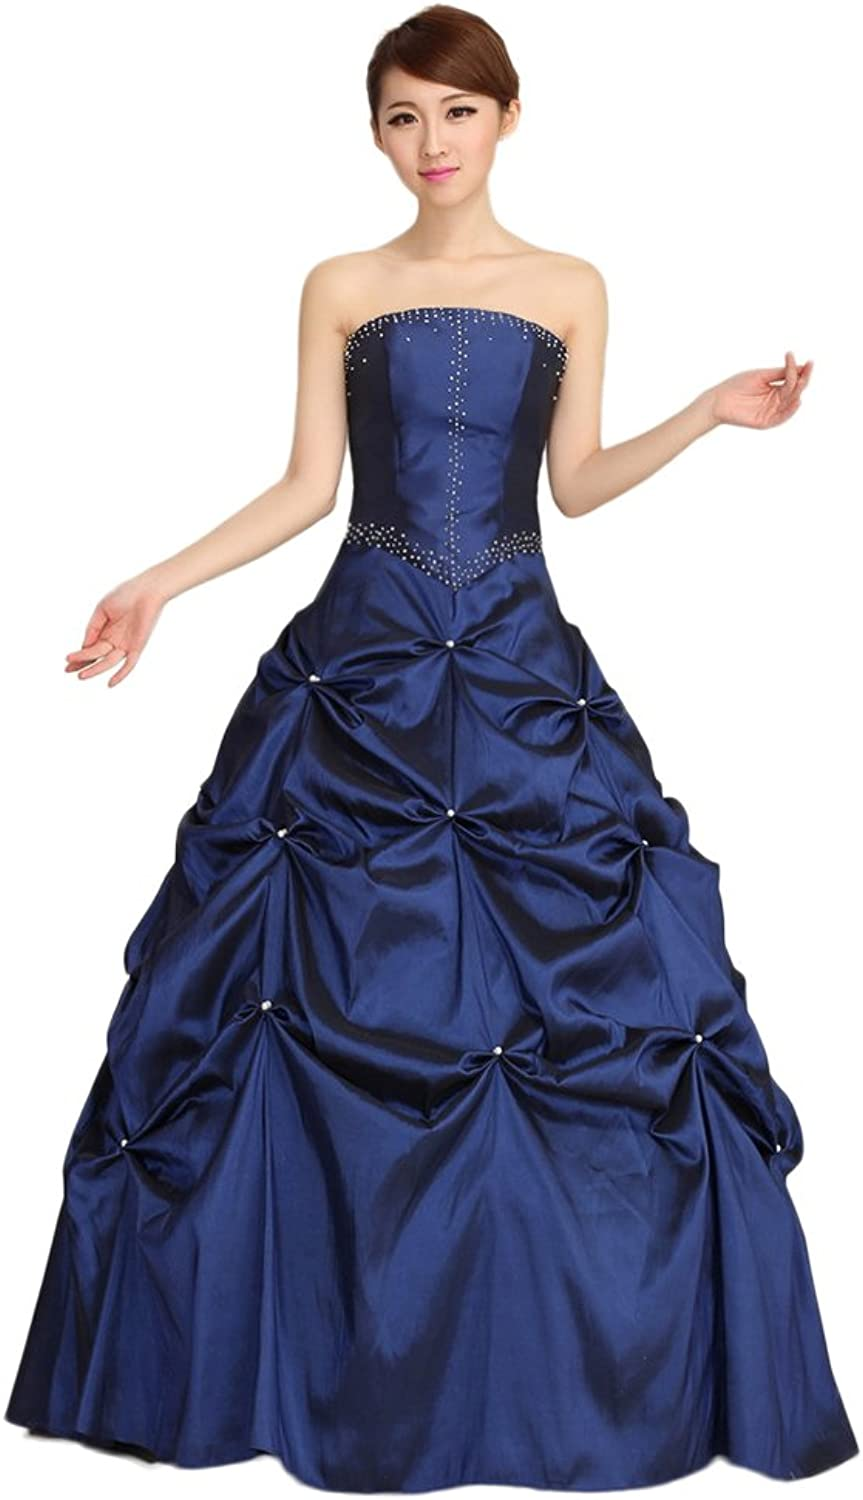 WeWind Women Wedding Dresses Royal bluee Evening Dress Strapless Party Wear